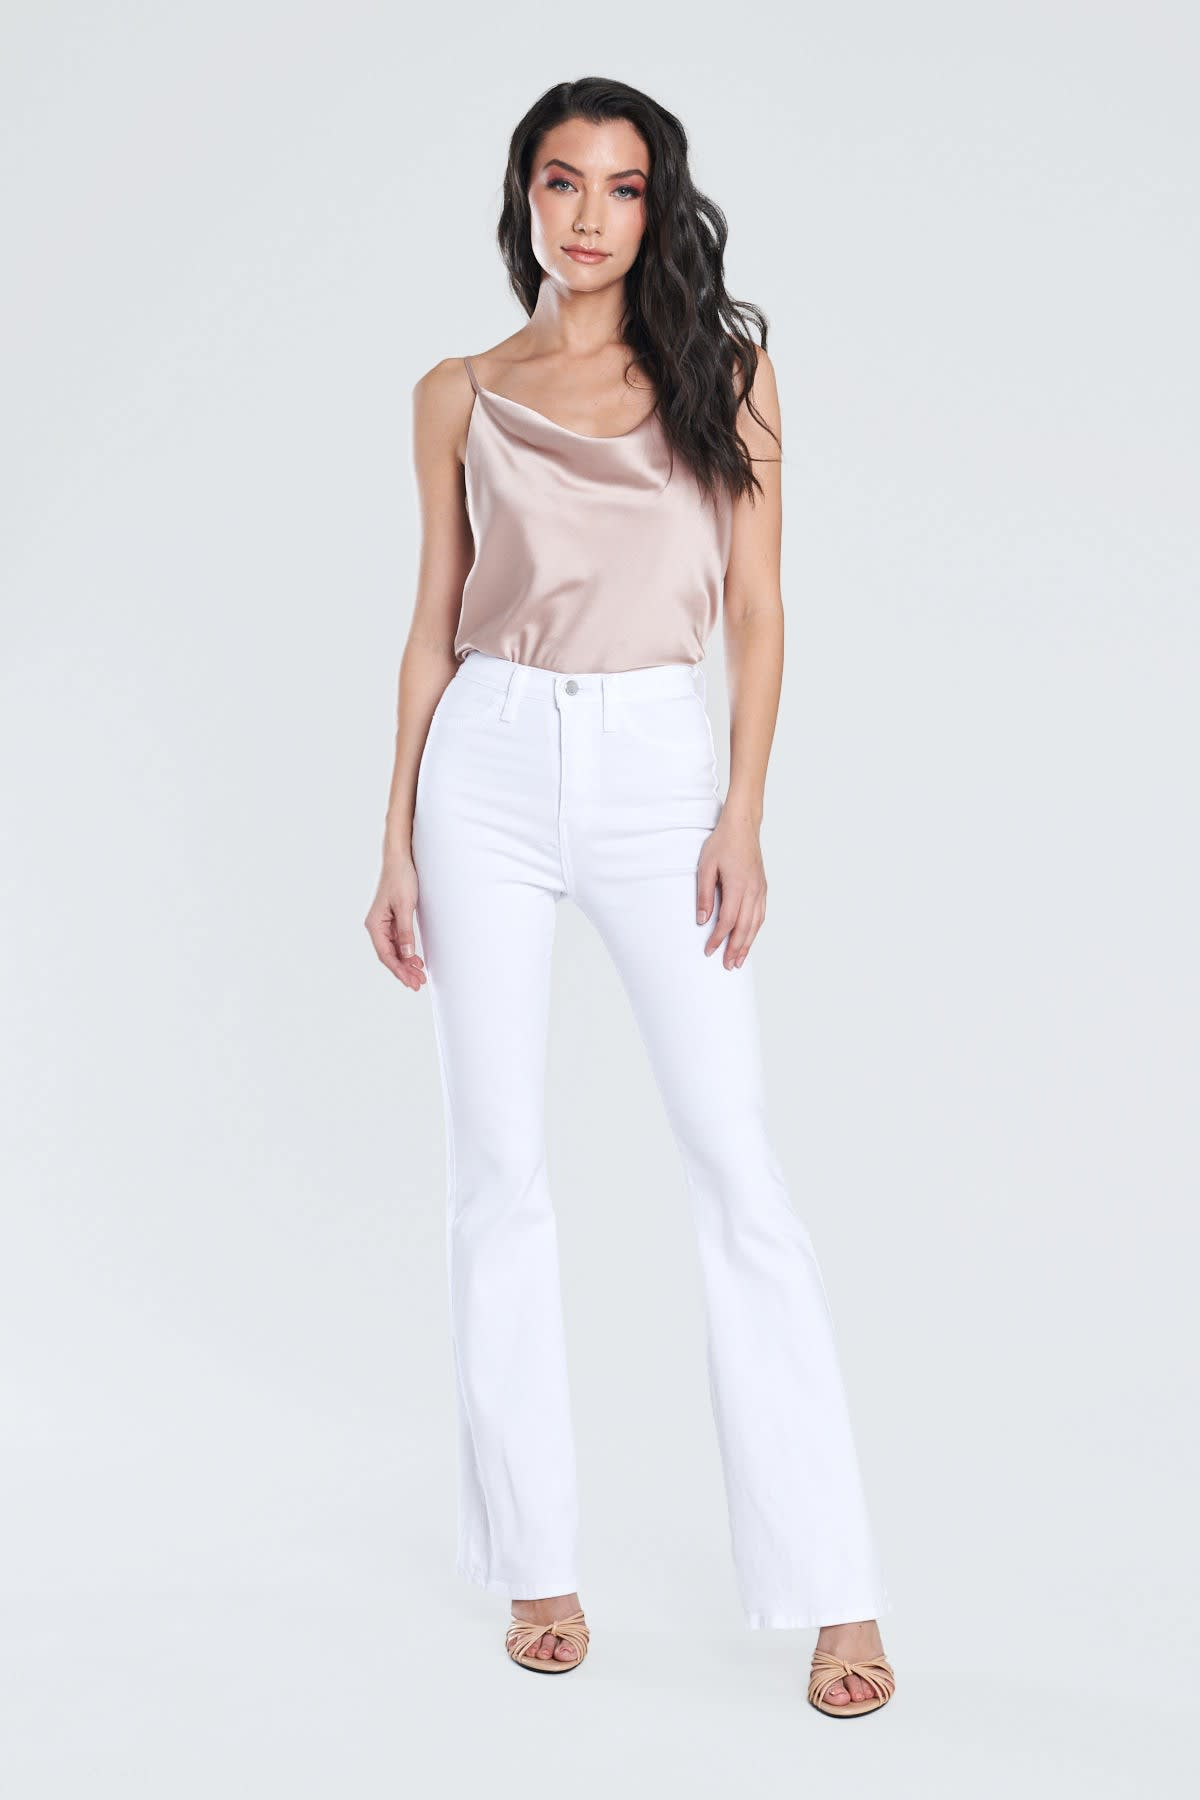 White Classic Flare Jeans - White - Front